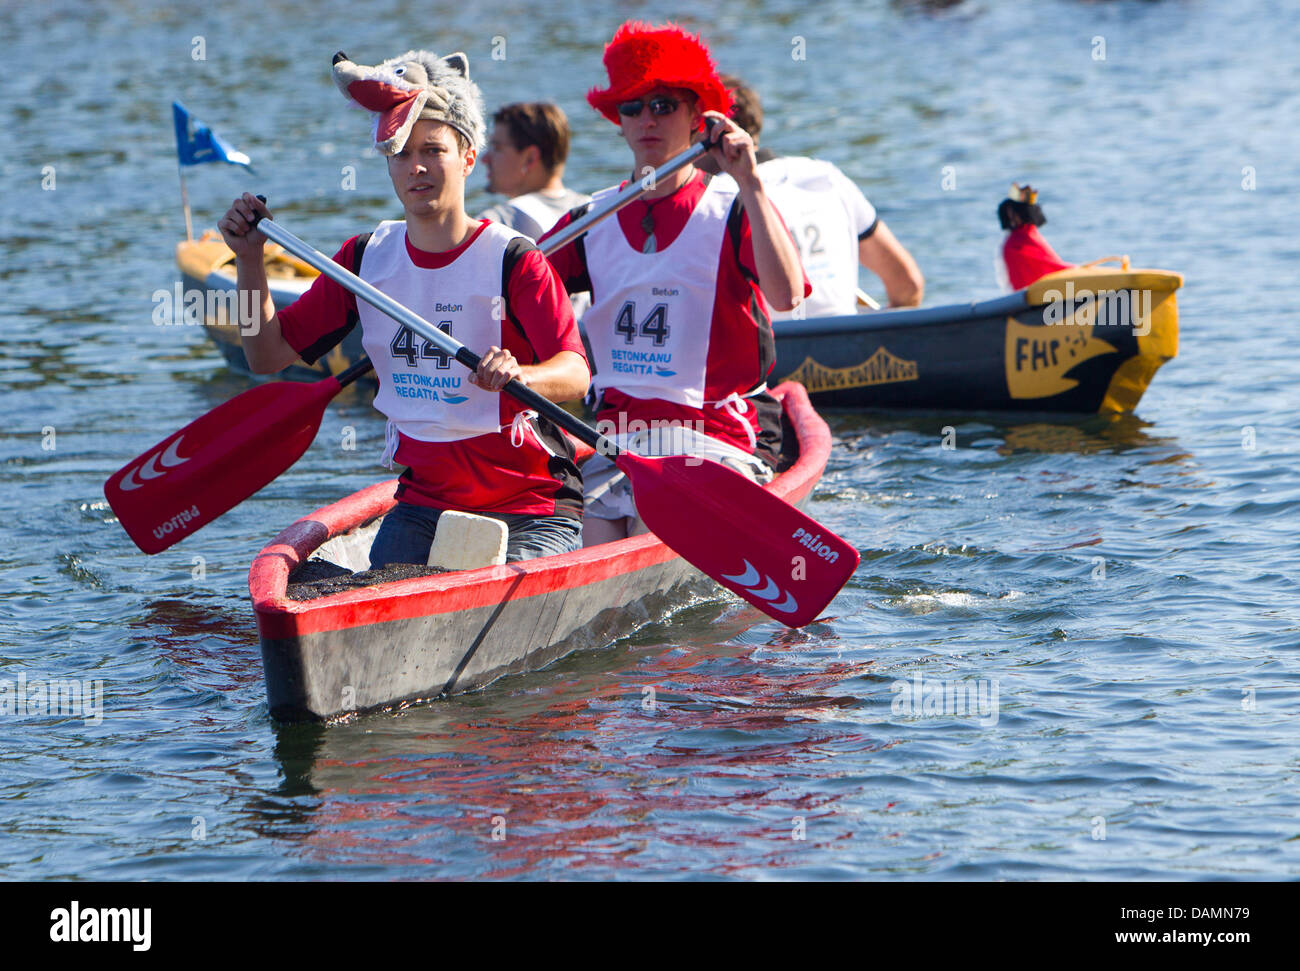 Participants from the university of Regensburg paddle in their canoe 'Mean Wolf' during the 13th German - Stock Image